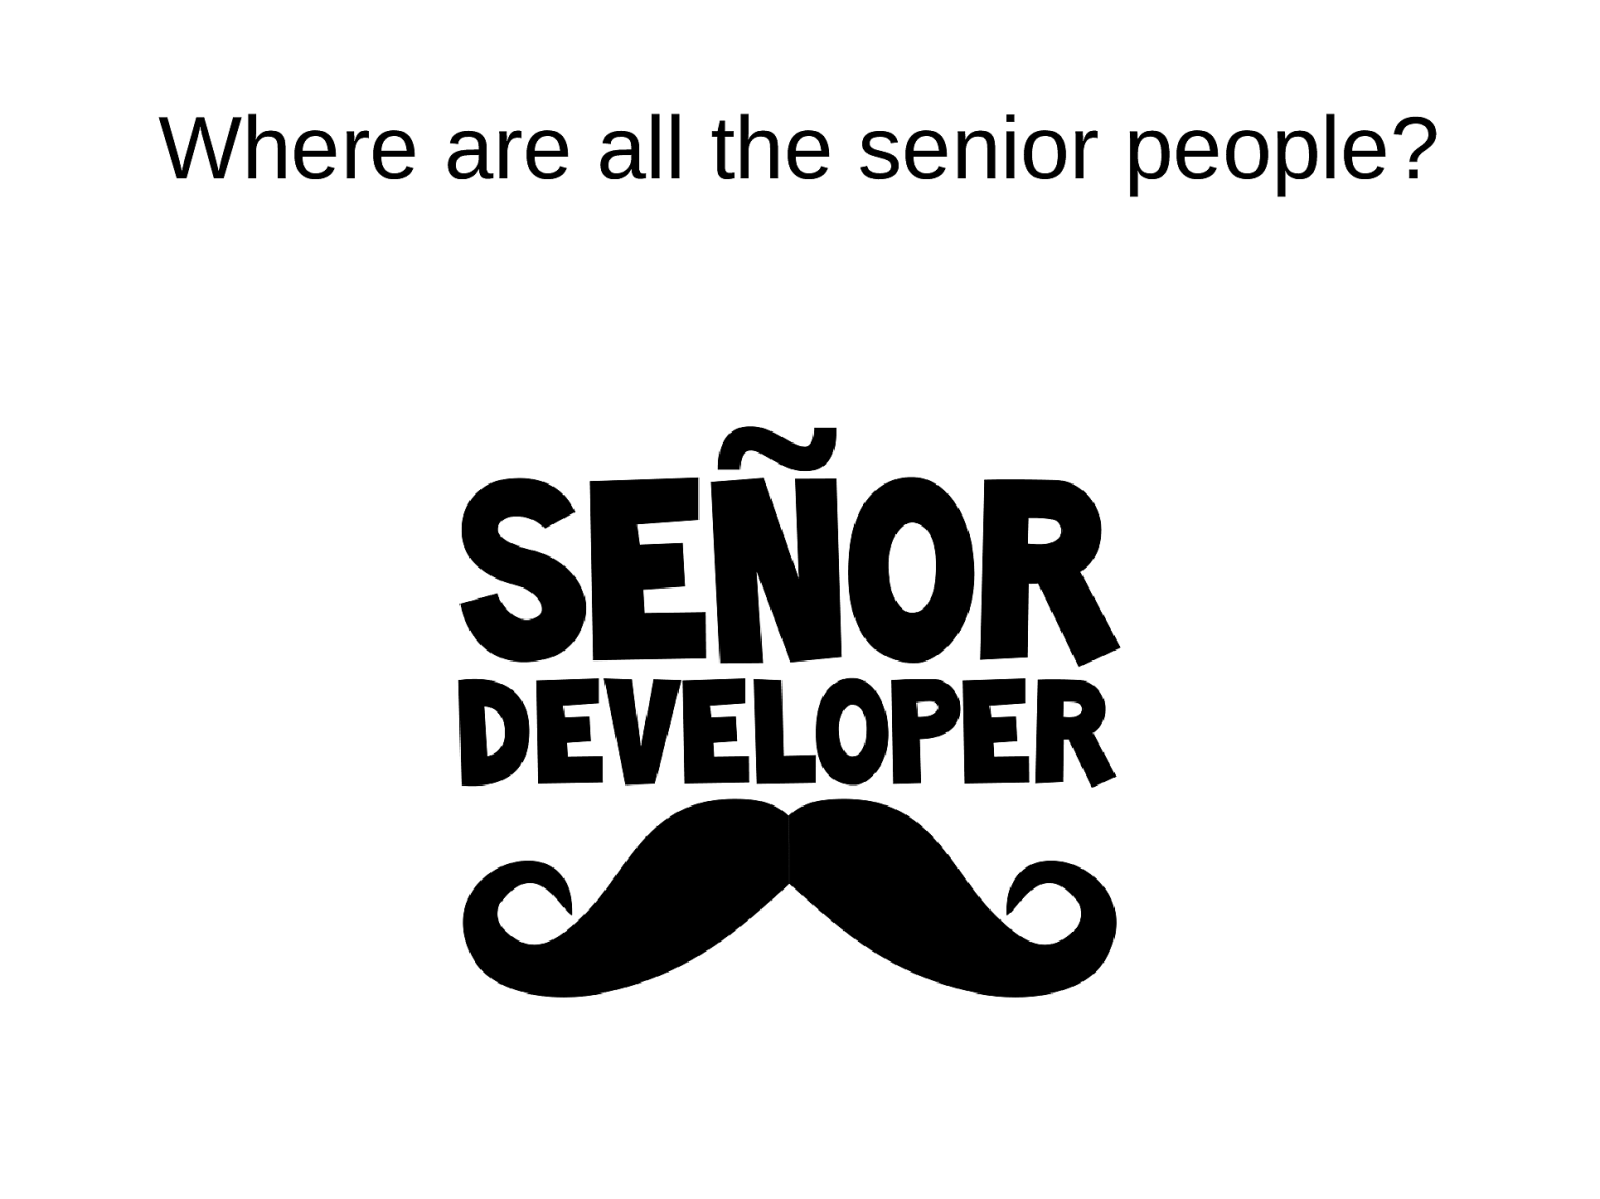 Where are all the senior people?